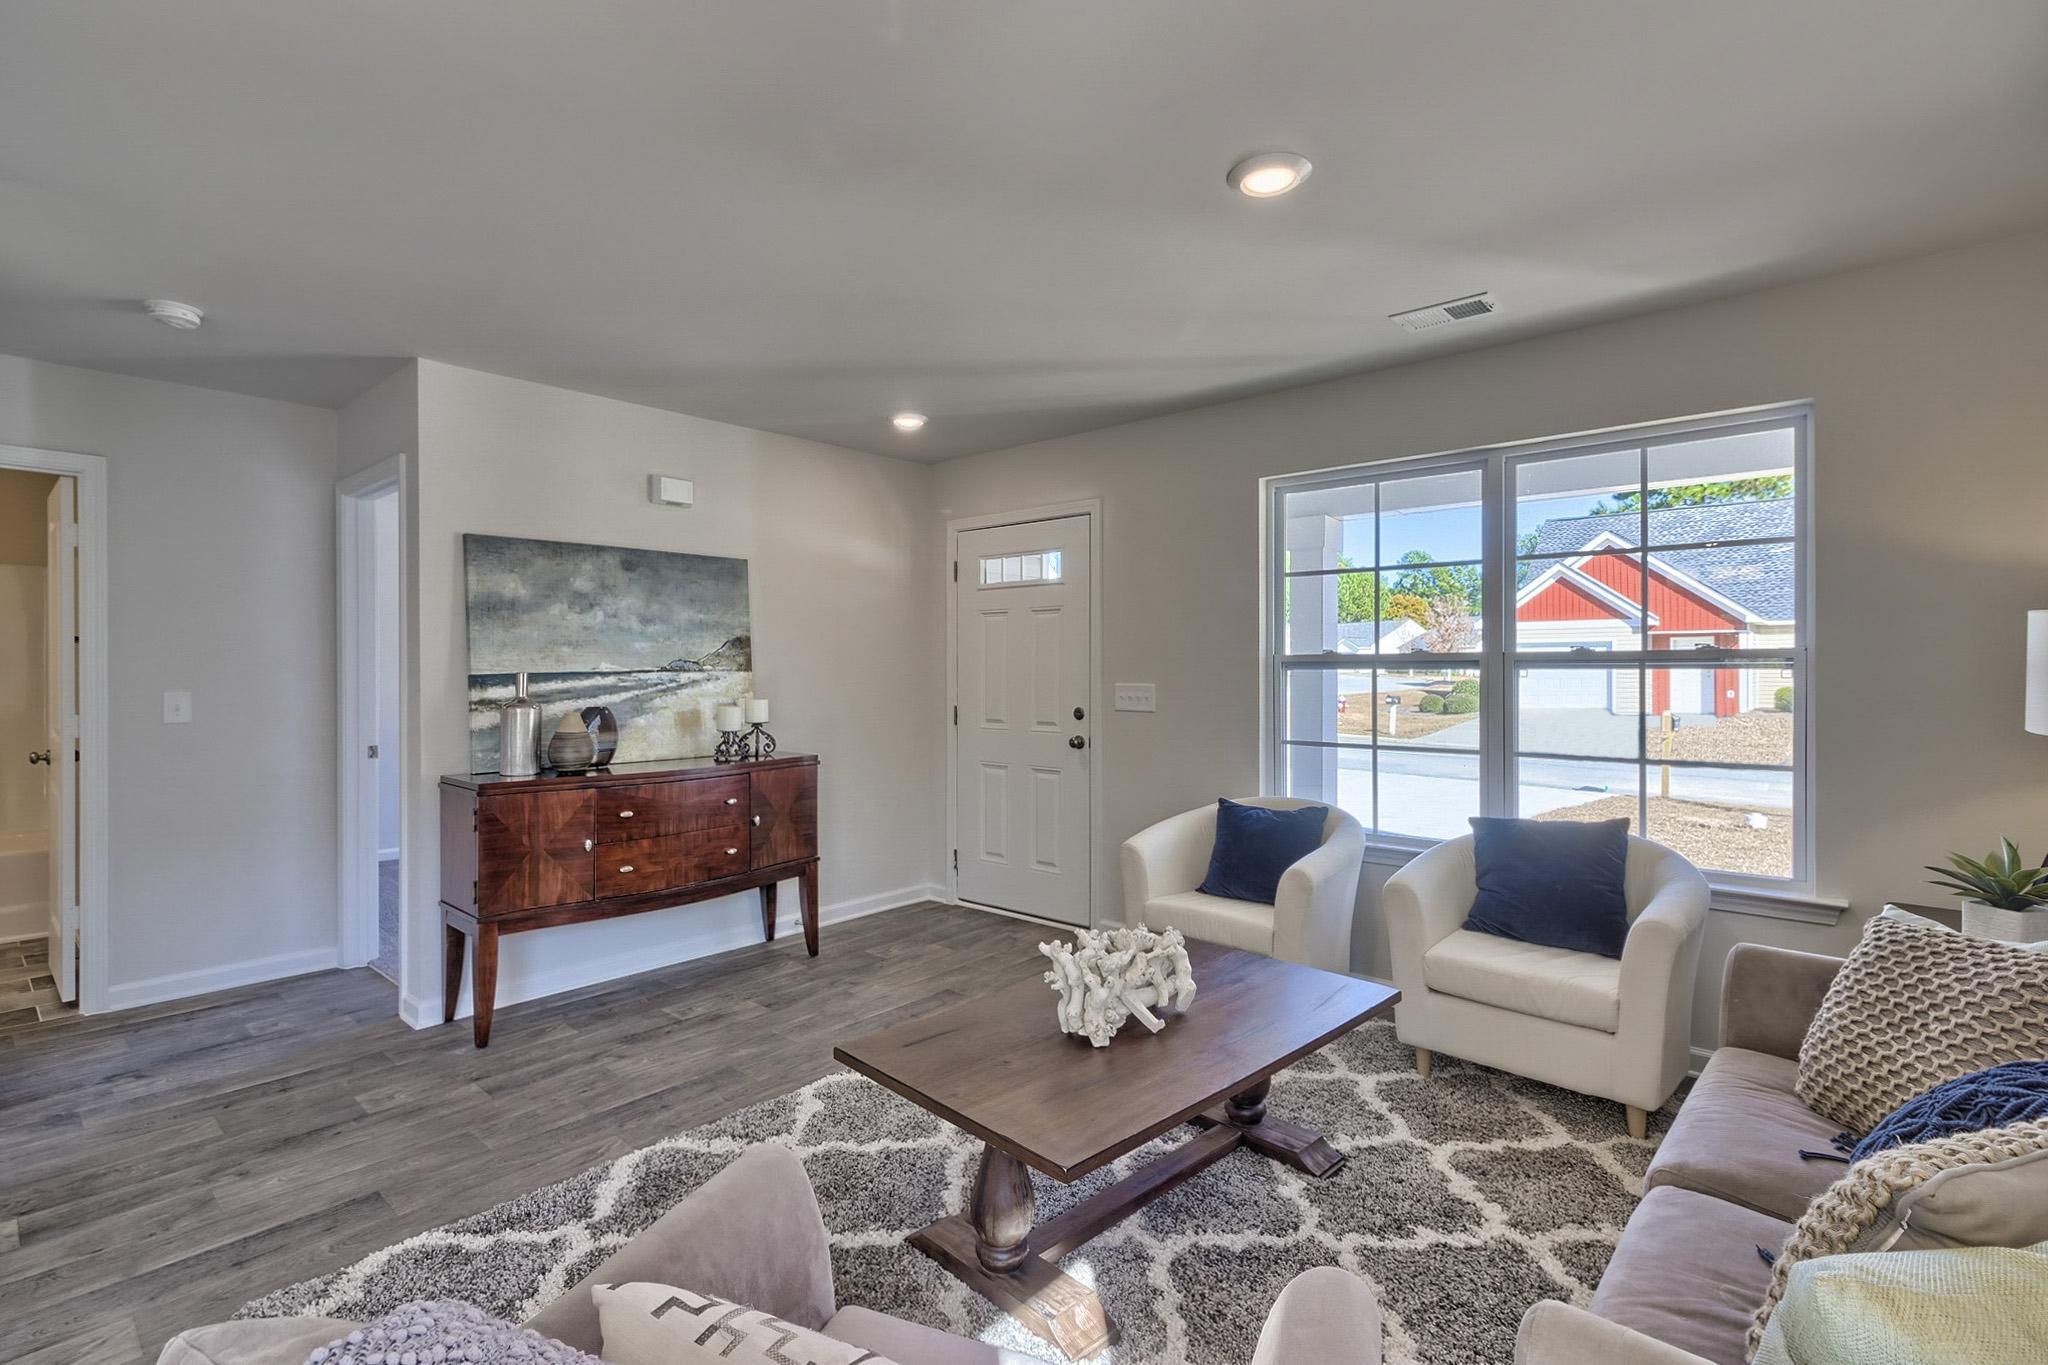 Living Area featured in the Dogwood By McGuinn Hybrid Homes in Columbia, SC